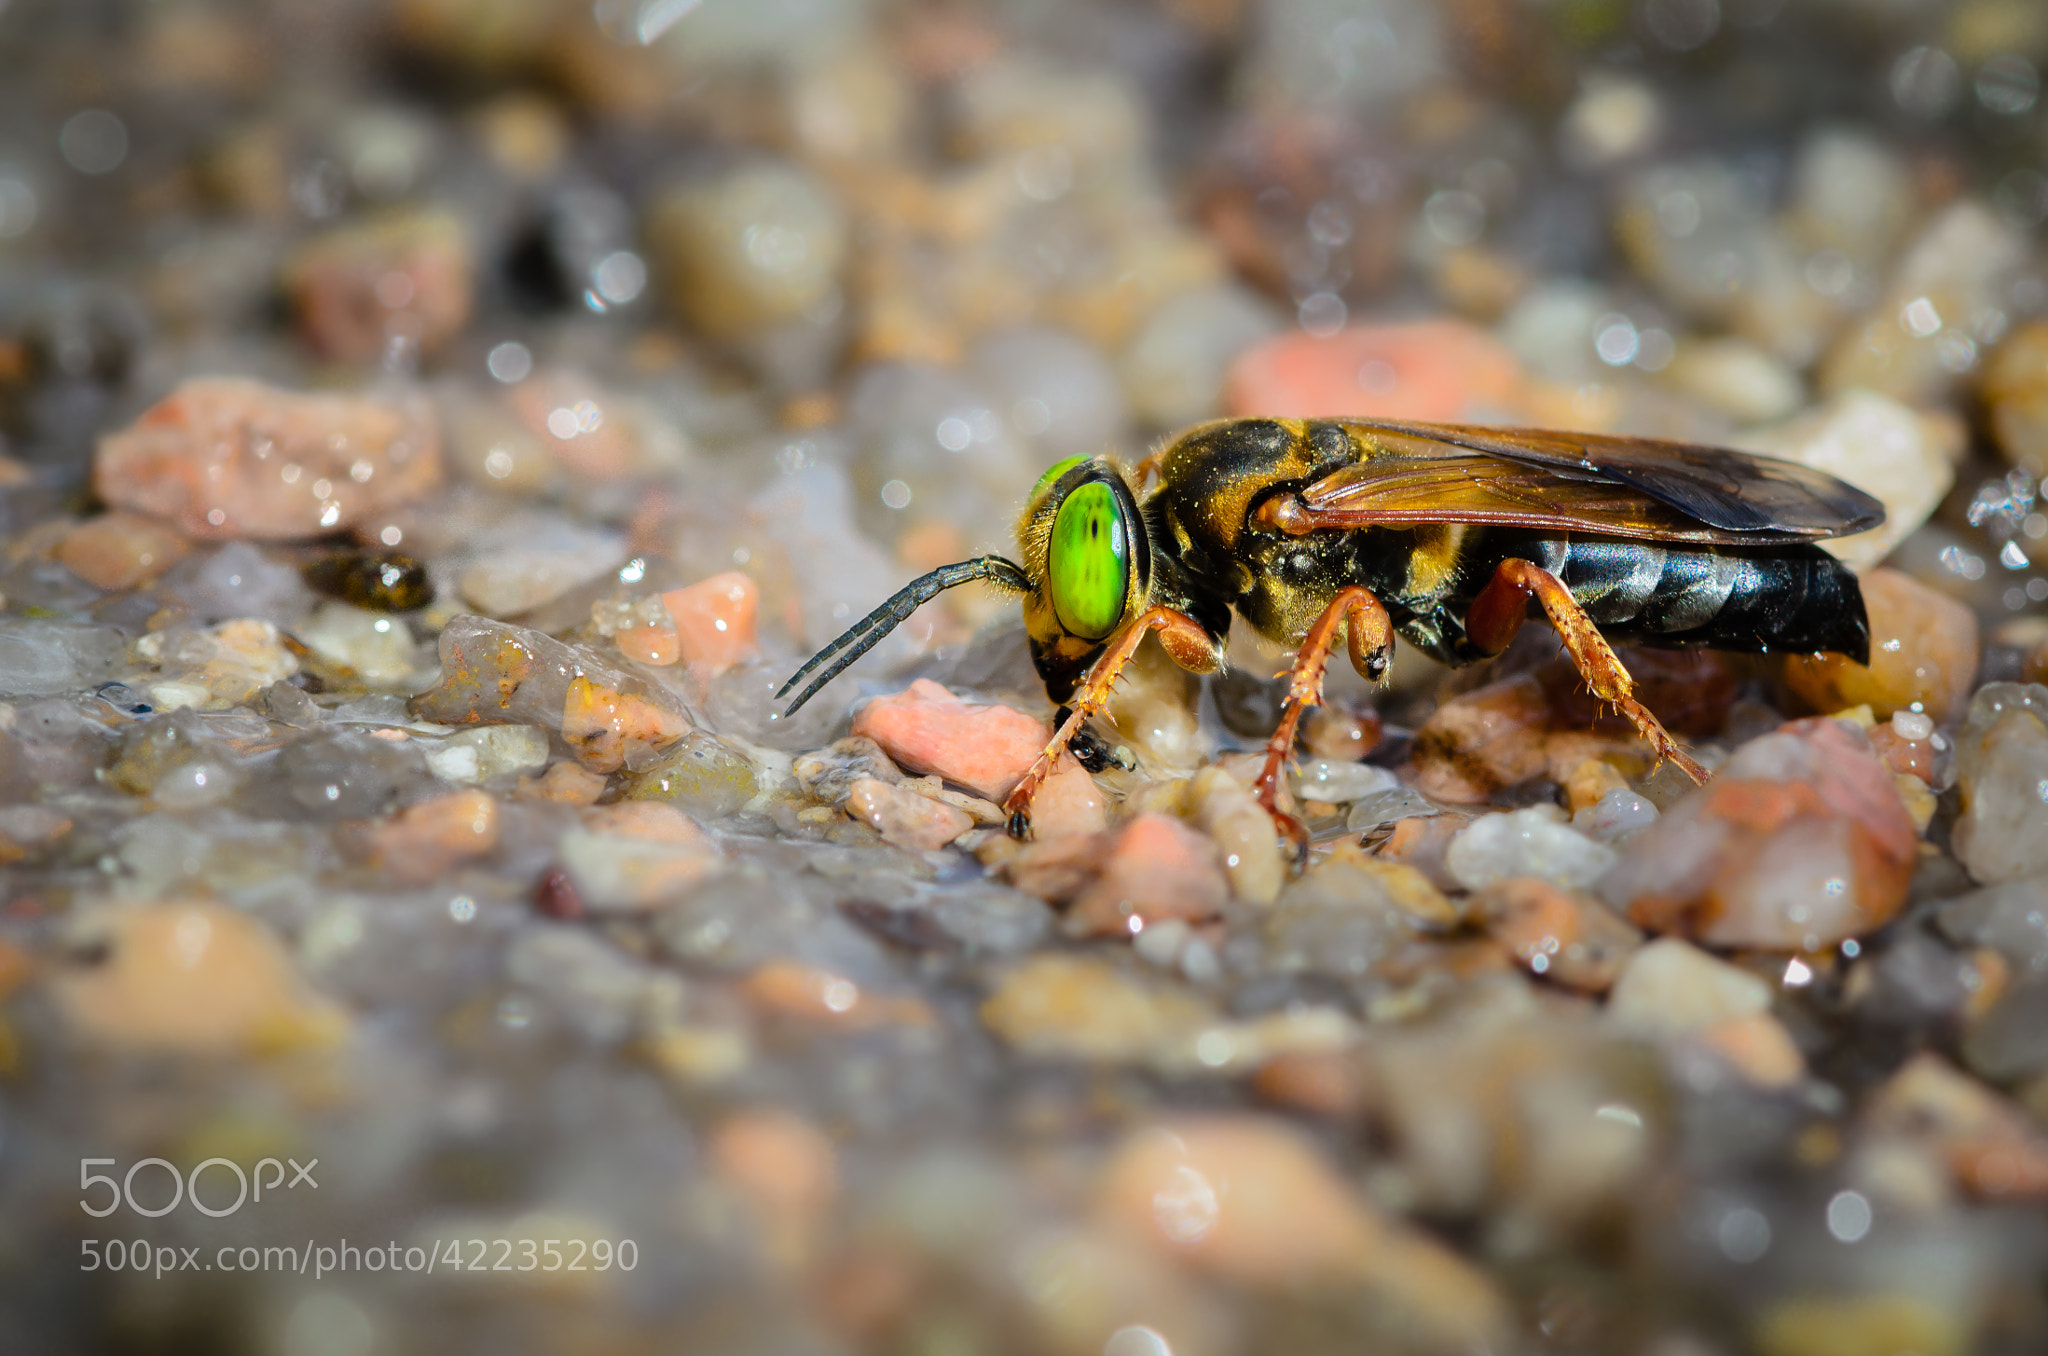 Photograph Thirsty hornet by Raed Ammari on 500px